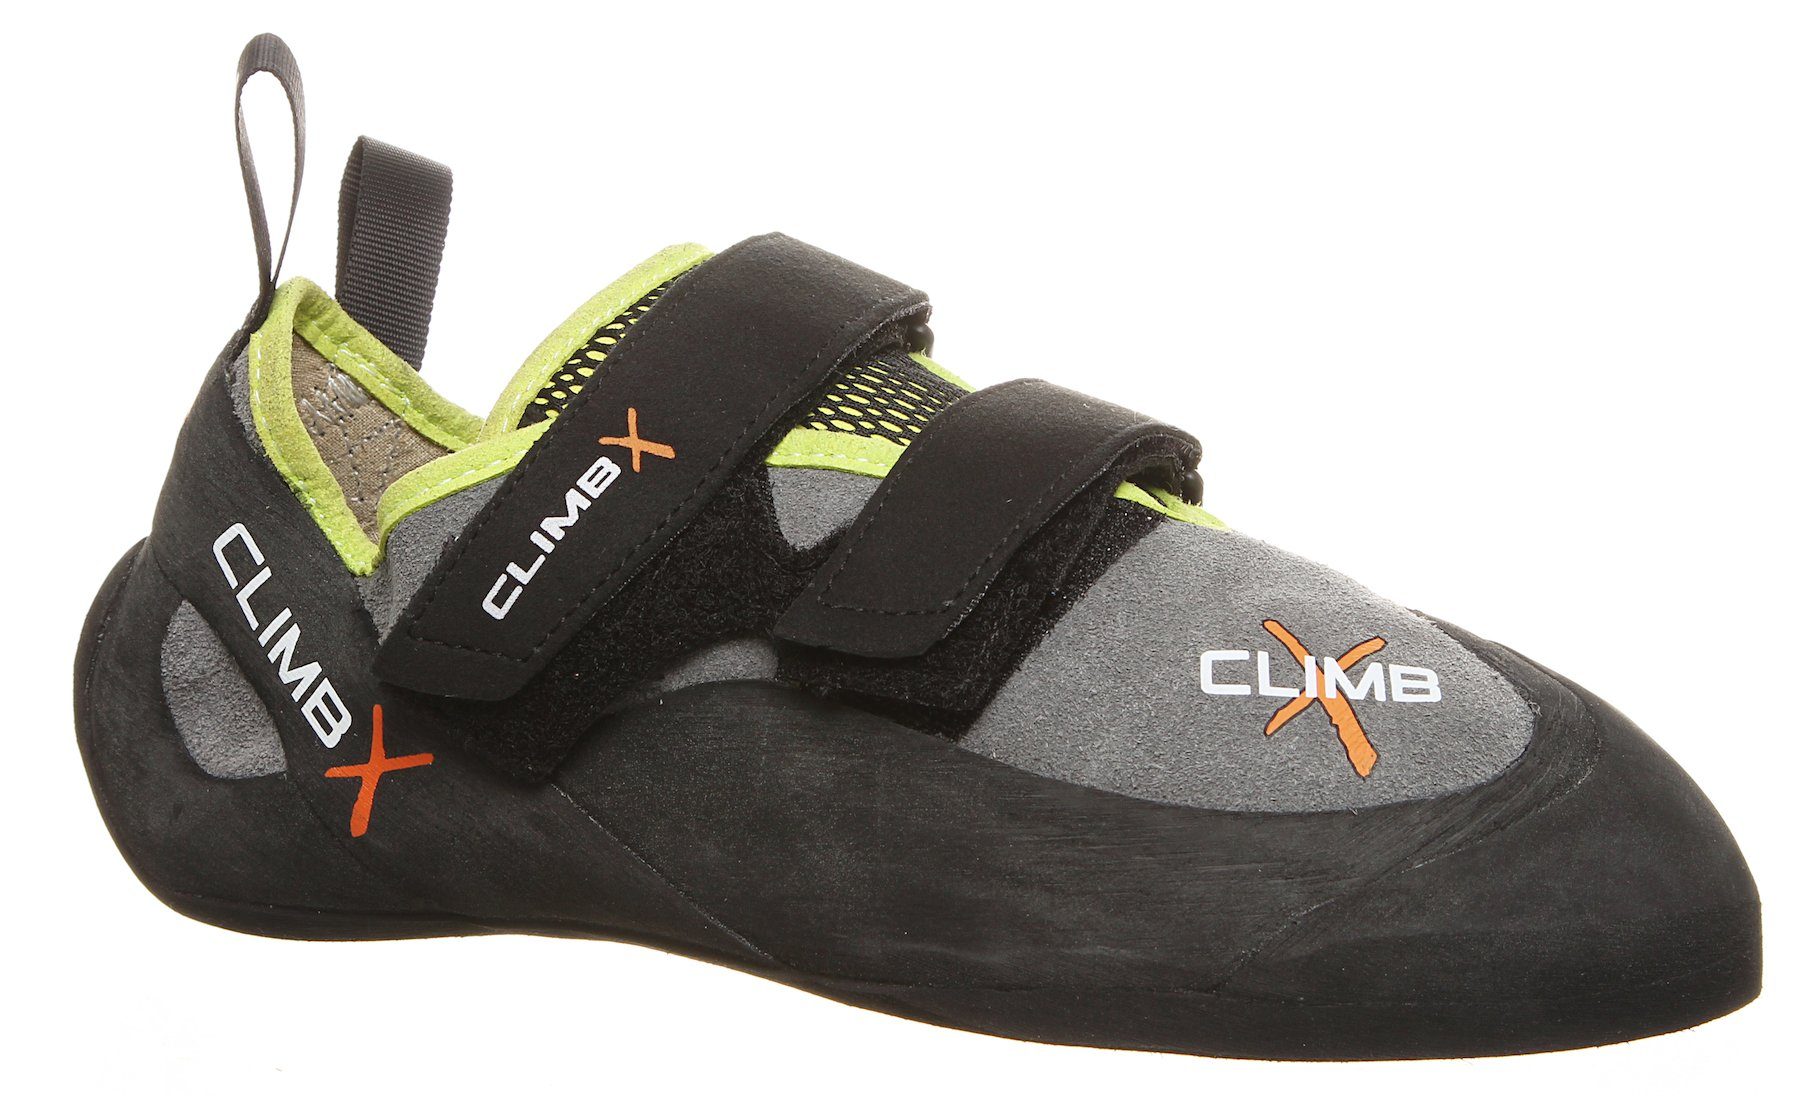 Climb X Rave Trainer Climbing Shoe with Free Sickle M-16 Climbing Brush (Men's 9.5, Grey) by Climb X